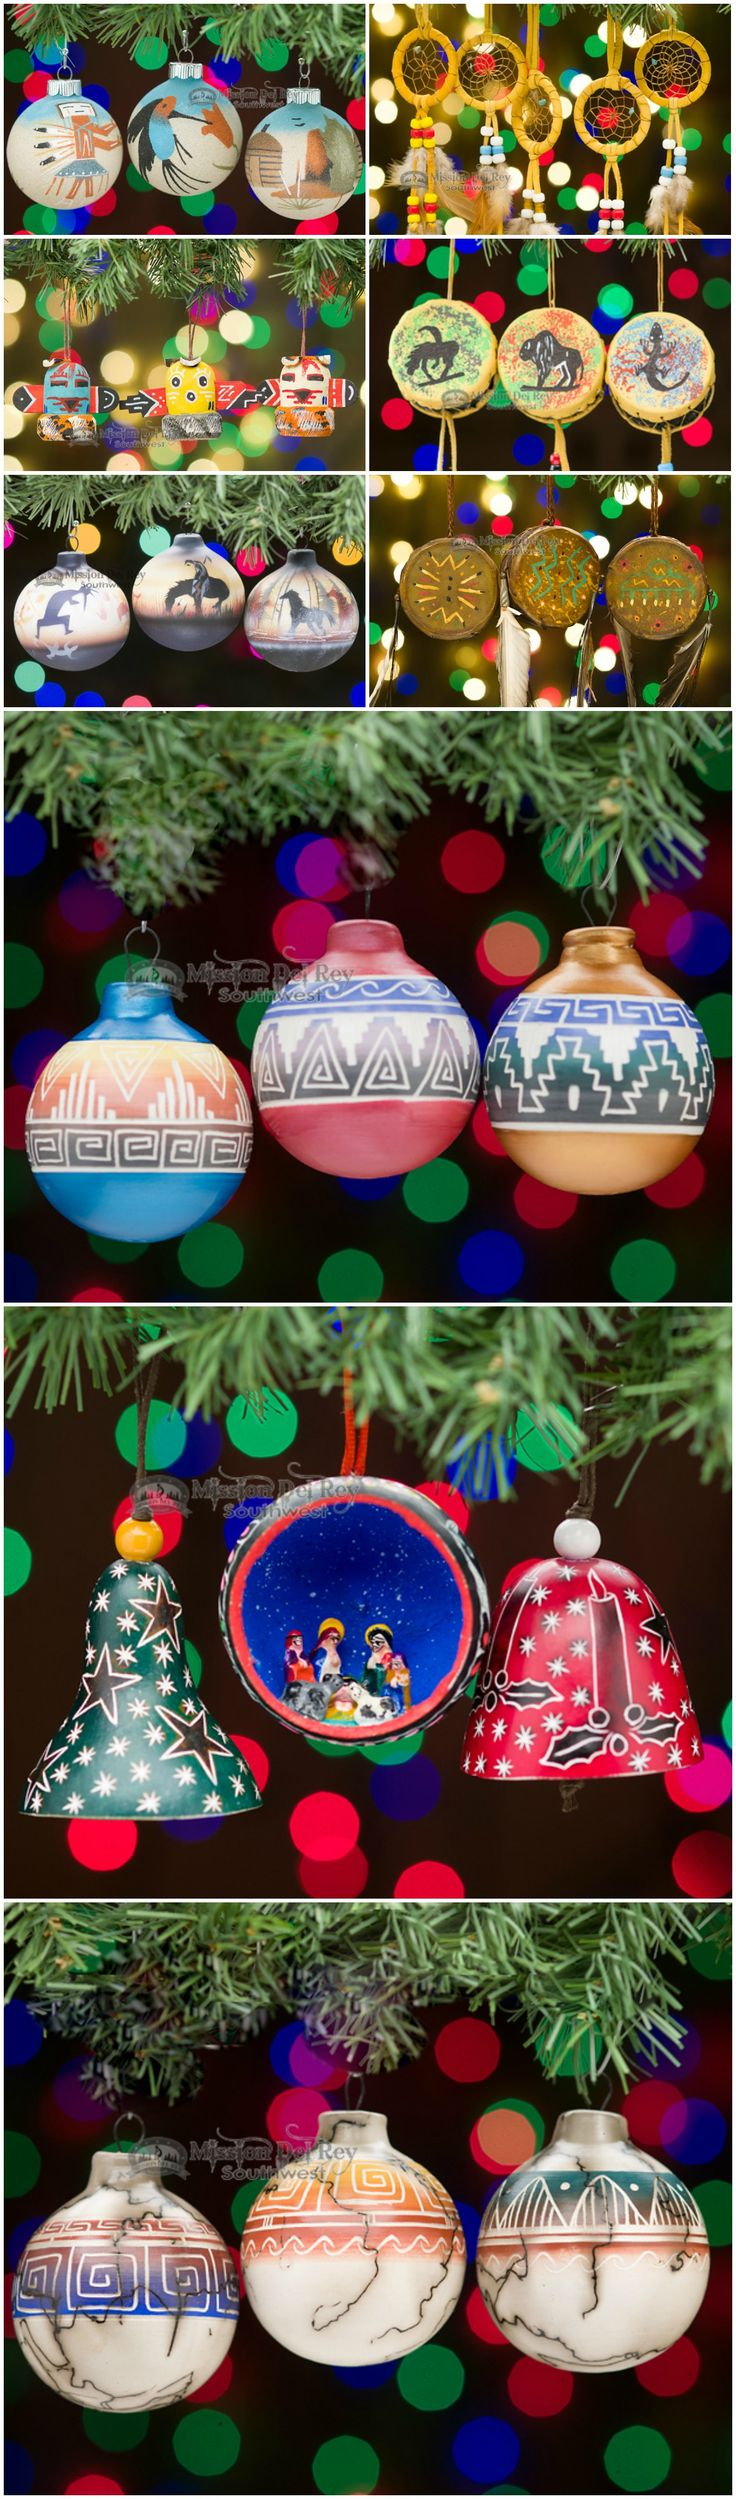 Our beautiful southwestern Christmas ornaments are the perfect decor accent for a southwestern, western or rustic style home.  Rustic ornaments add just the right touch to any tree and enhance rustic furnishings and decor.  See our entire collection of Native American pottery ornaments, southwestern ornaments and rustic decor at http://www.missiondelrey.com/rustic-southwest-christmas-ornaments/